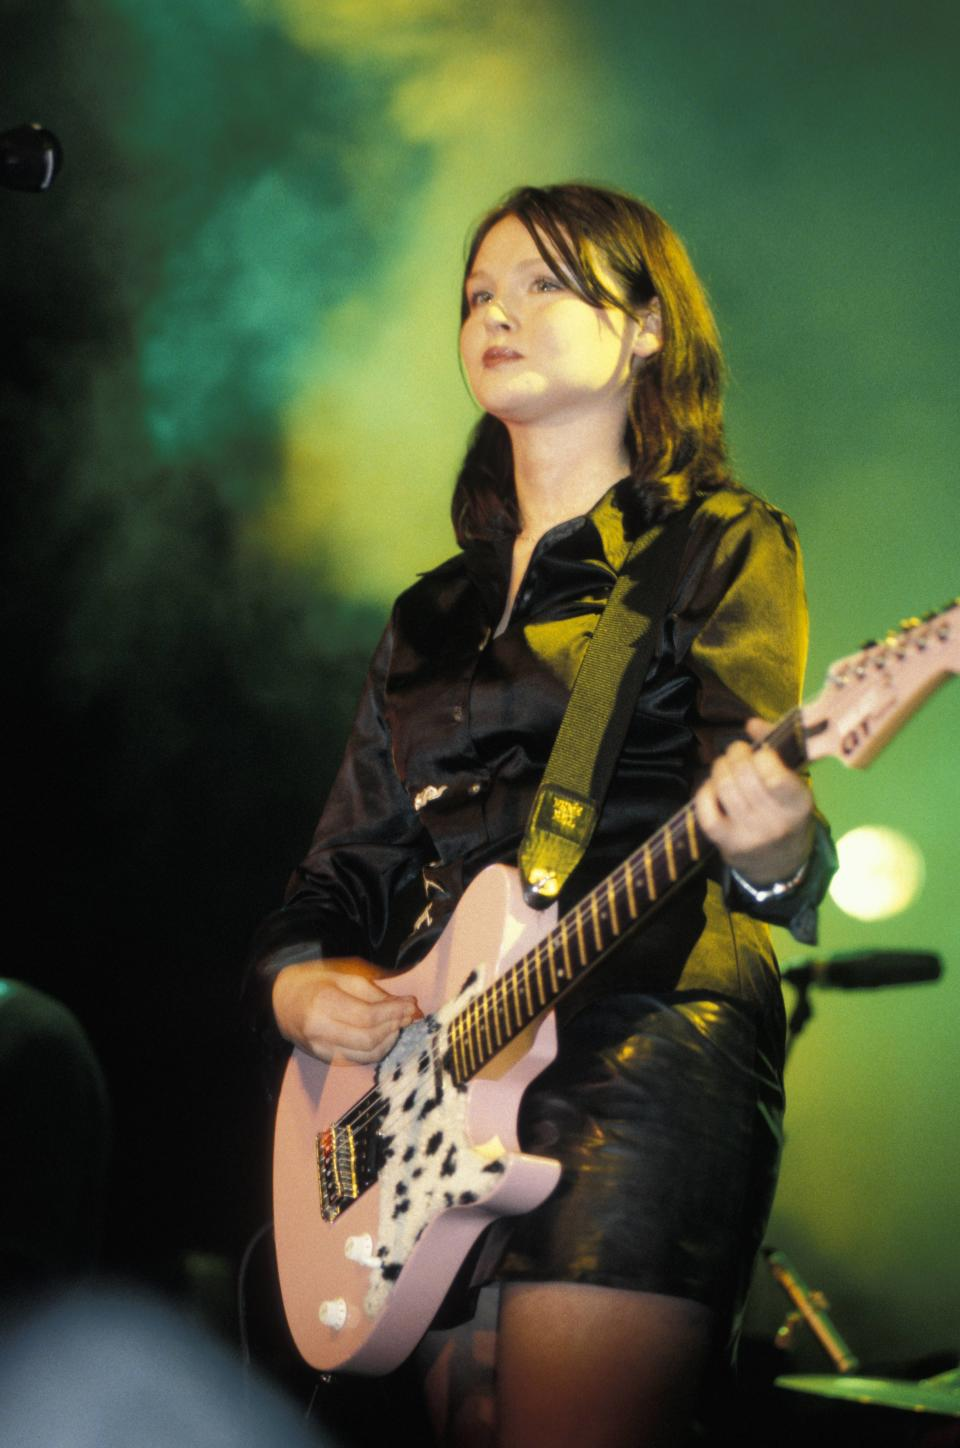 Sophie Ellis-Bexter, seen here performing as part of her first band Theaudience, said being dropped by her record label taught her not to fear failure  (Photo by Nicky J. Sims/Redferns)